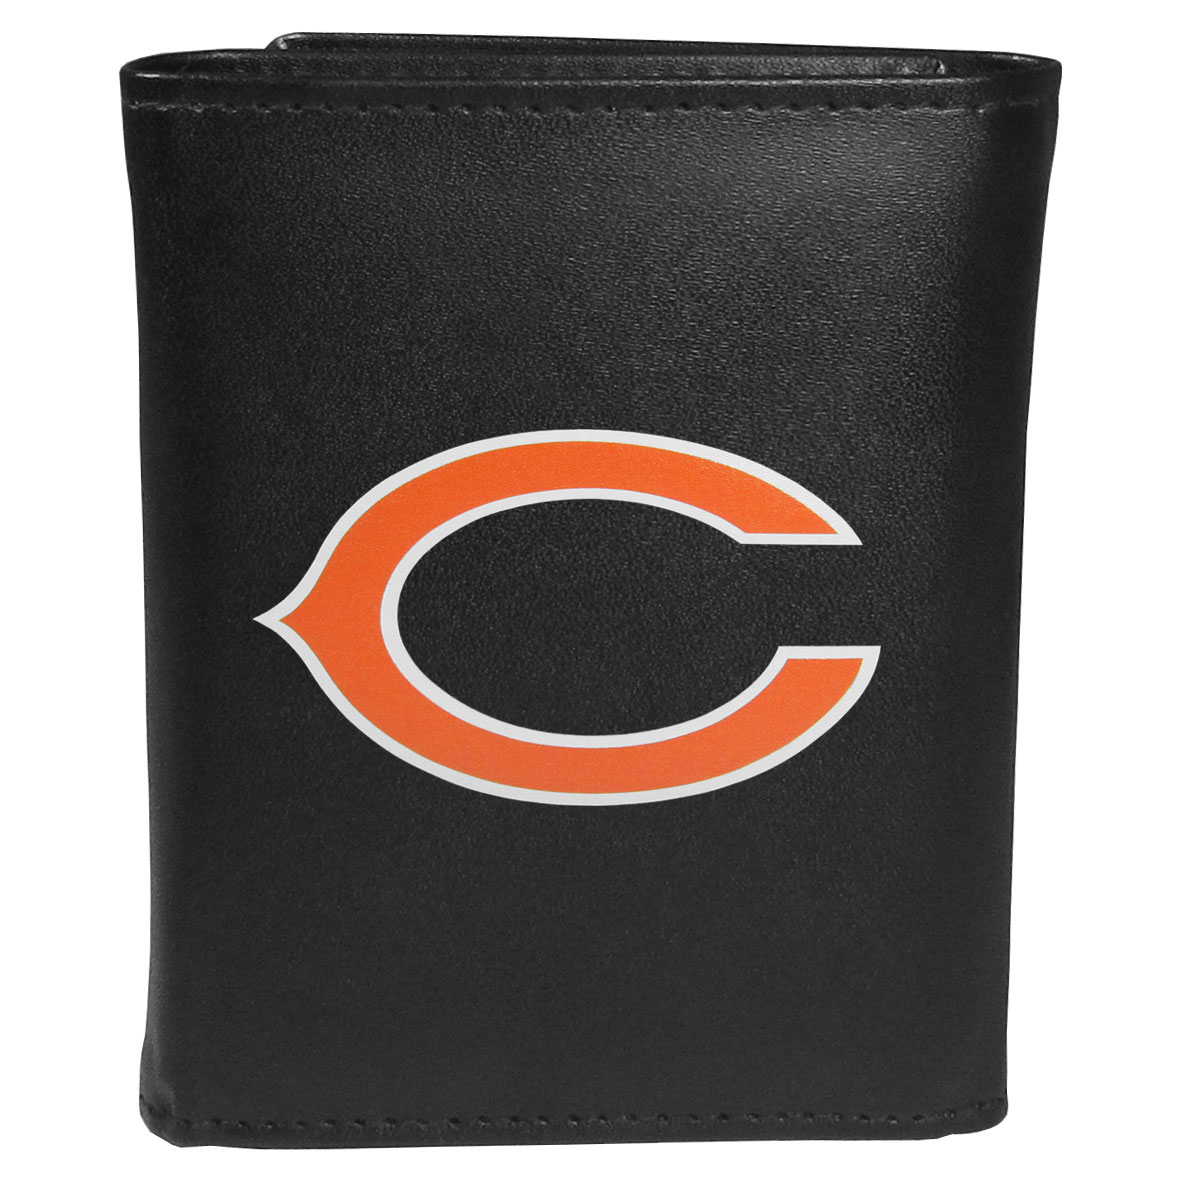 Chicago Bears Leather Tri-fold Wallet, Large Logo - Our classic fine leather tri-fold wallet is meticulously crafted with genuine leather that will age beautifully so you will have a quality wallet for years to come. This is fan apparel at its finest. The wallet is packed with organizational  features; lots of credit card slots, large billfold pocket, and a window ID slot. The front of the wallet features an extra large Chicago Bears printed logo.